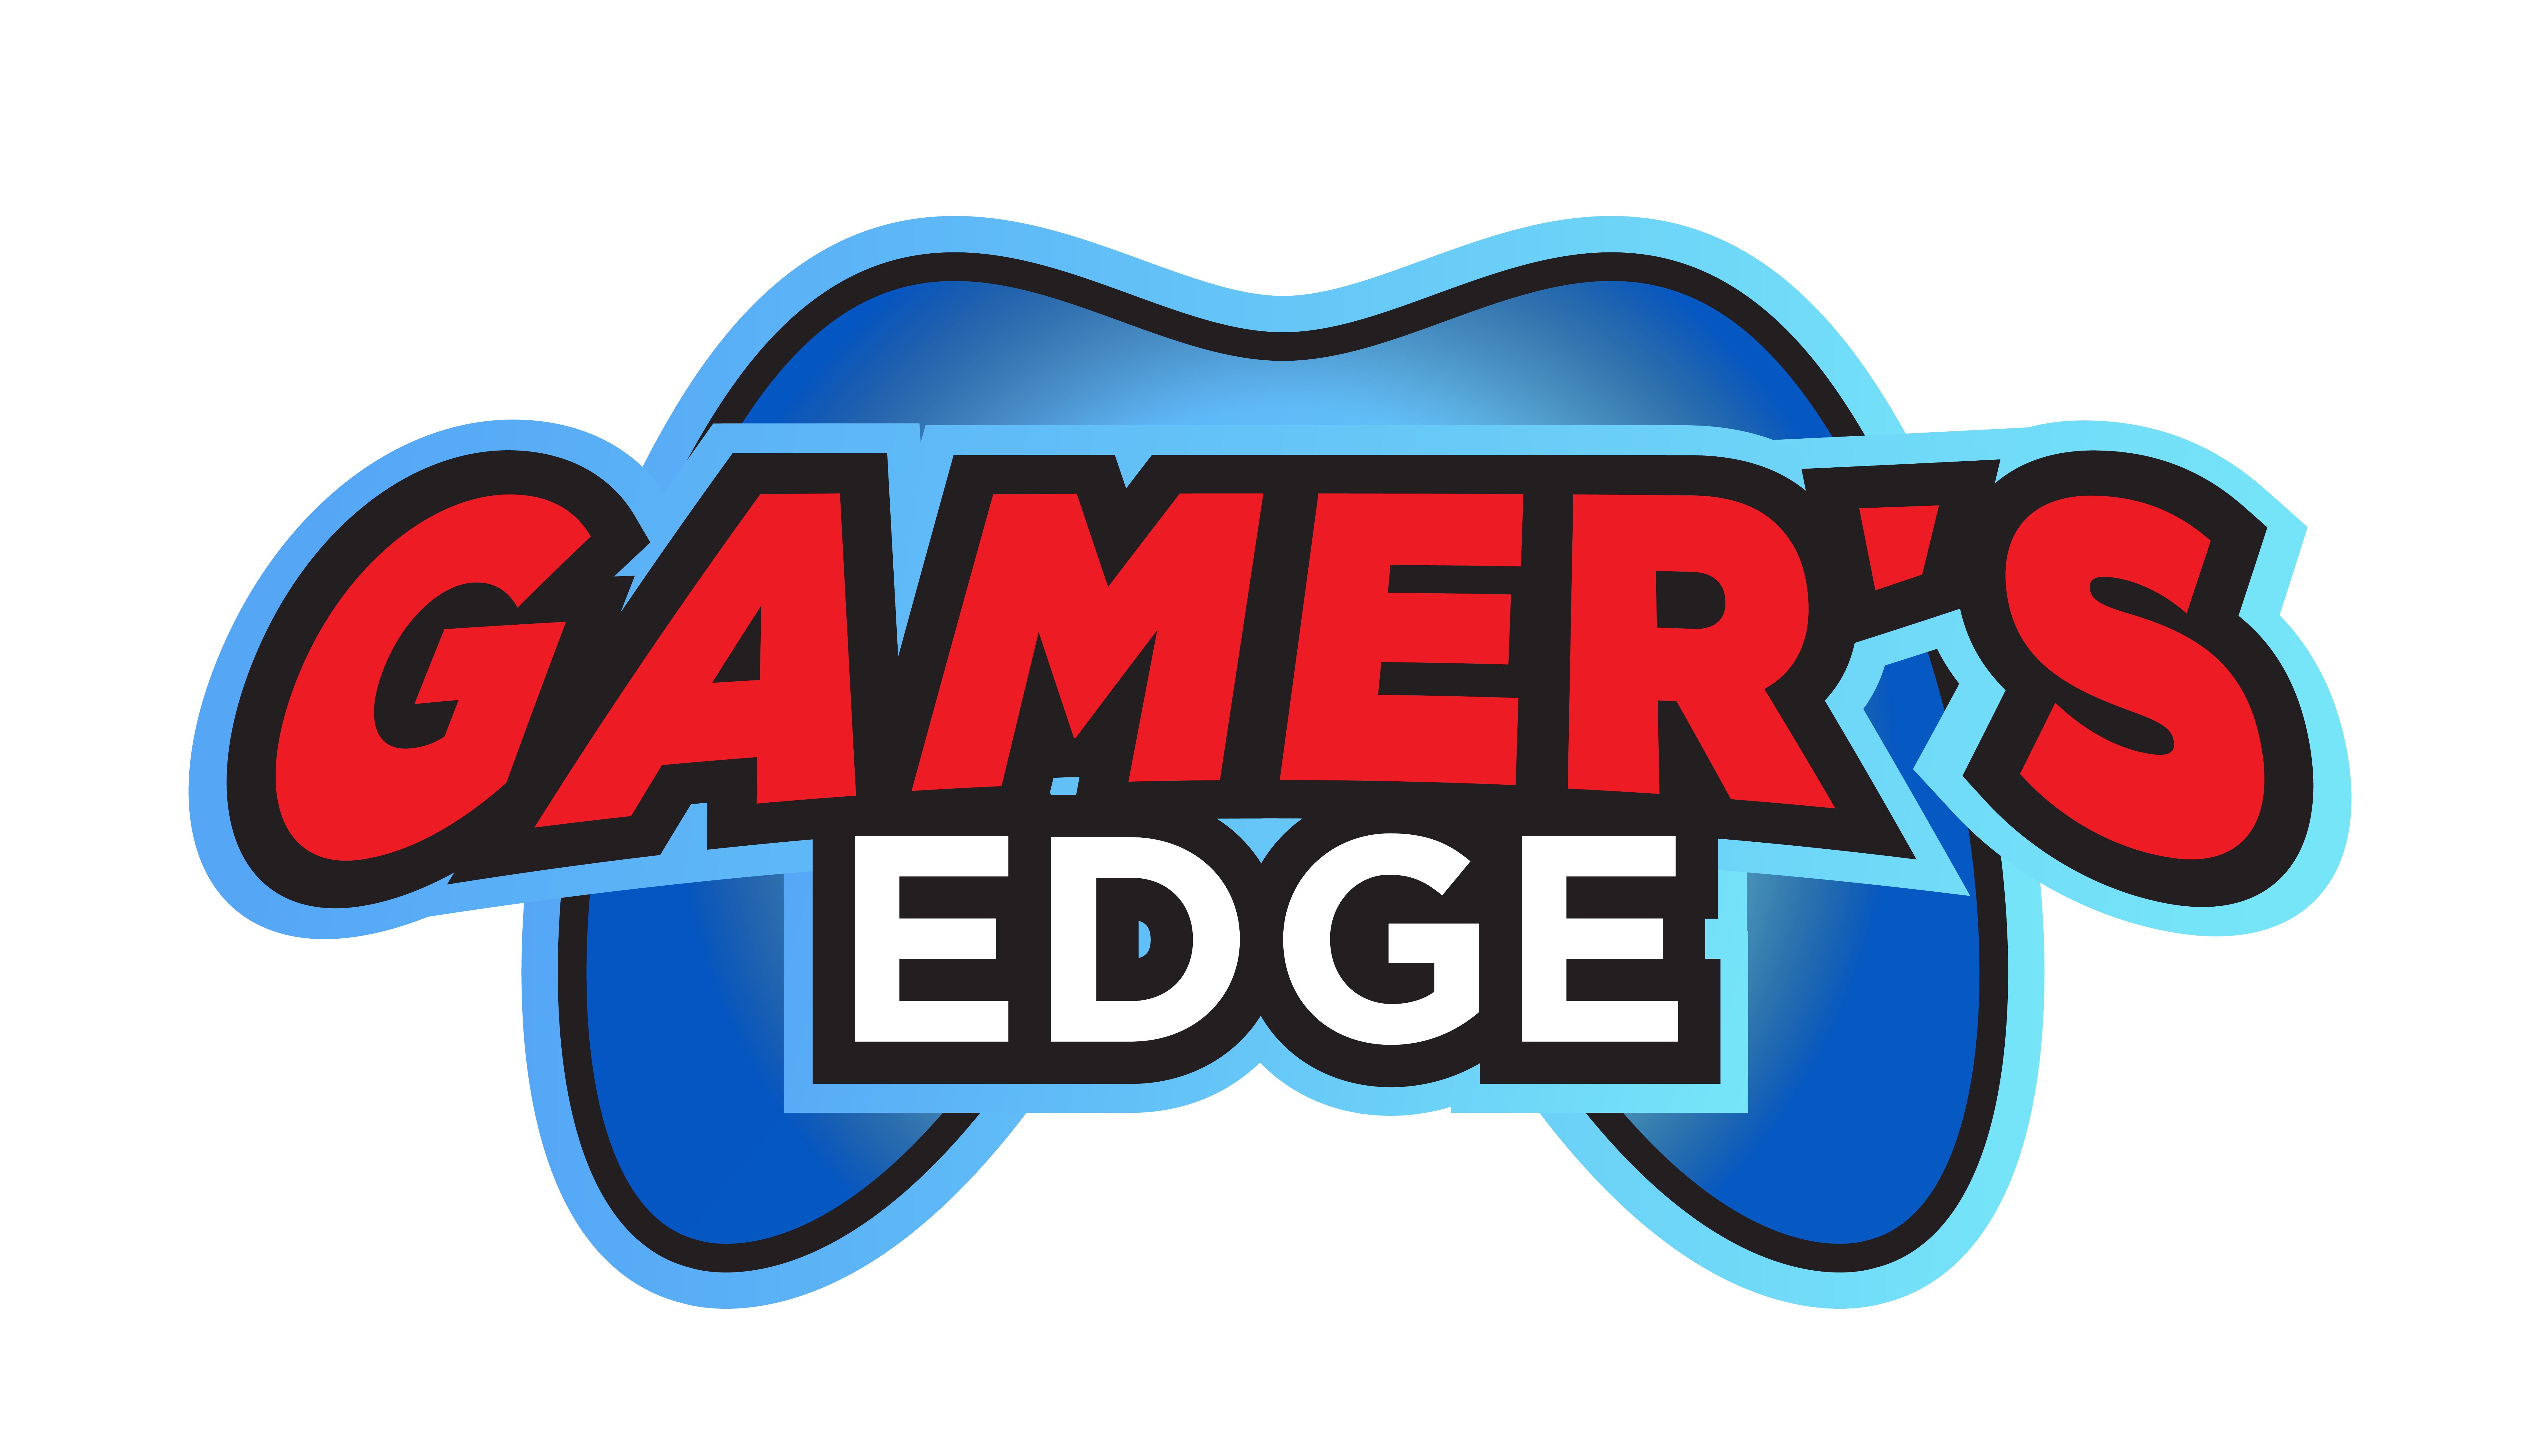 gamersedge_logo6-01